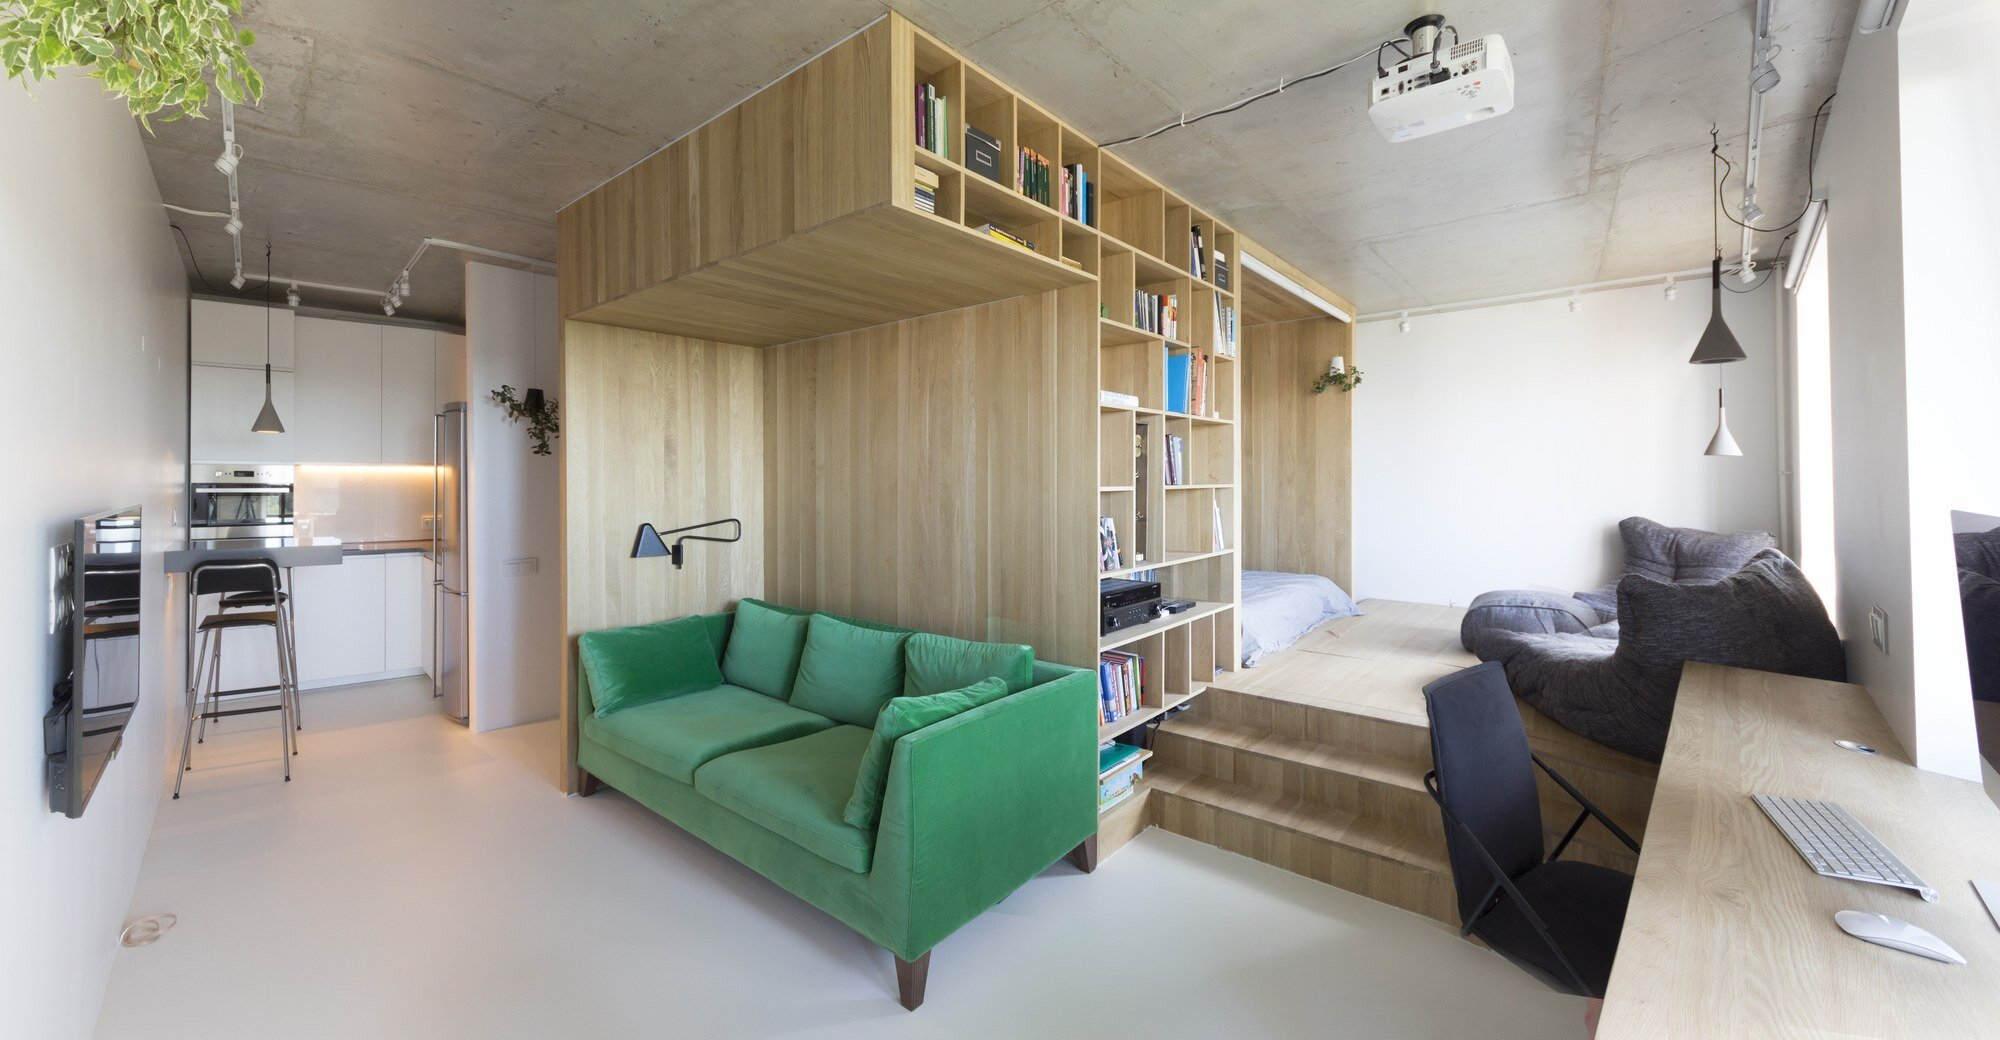 gorki-ruetemple-moscow-living-space-humble-homes